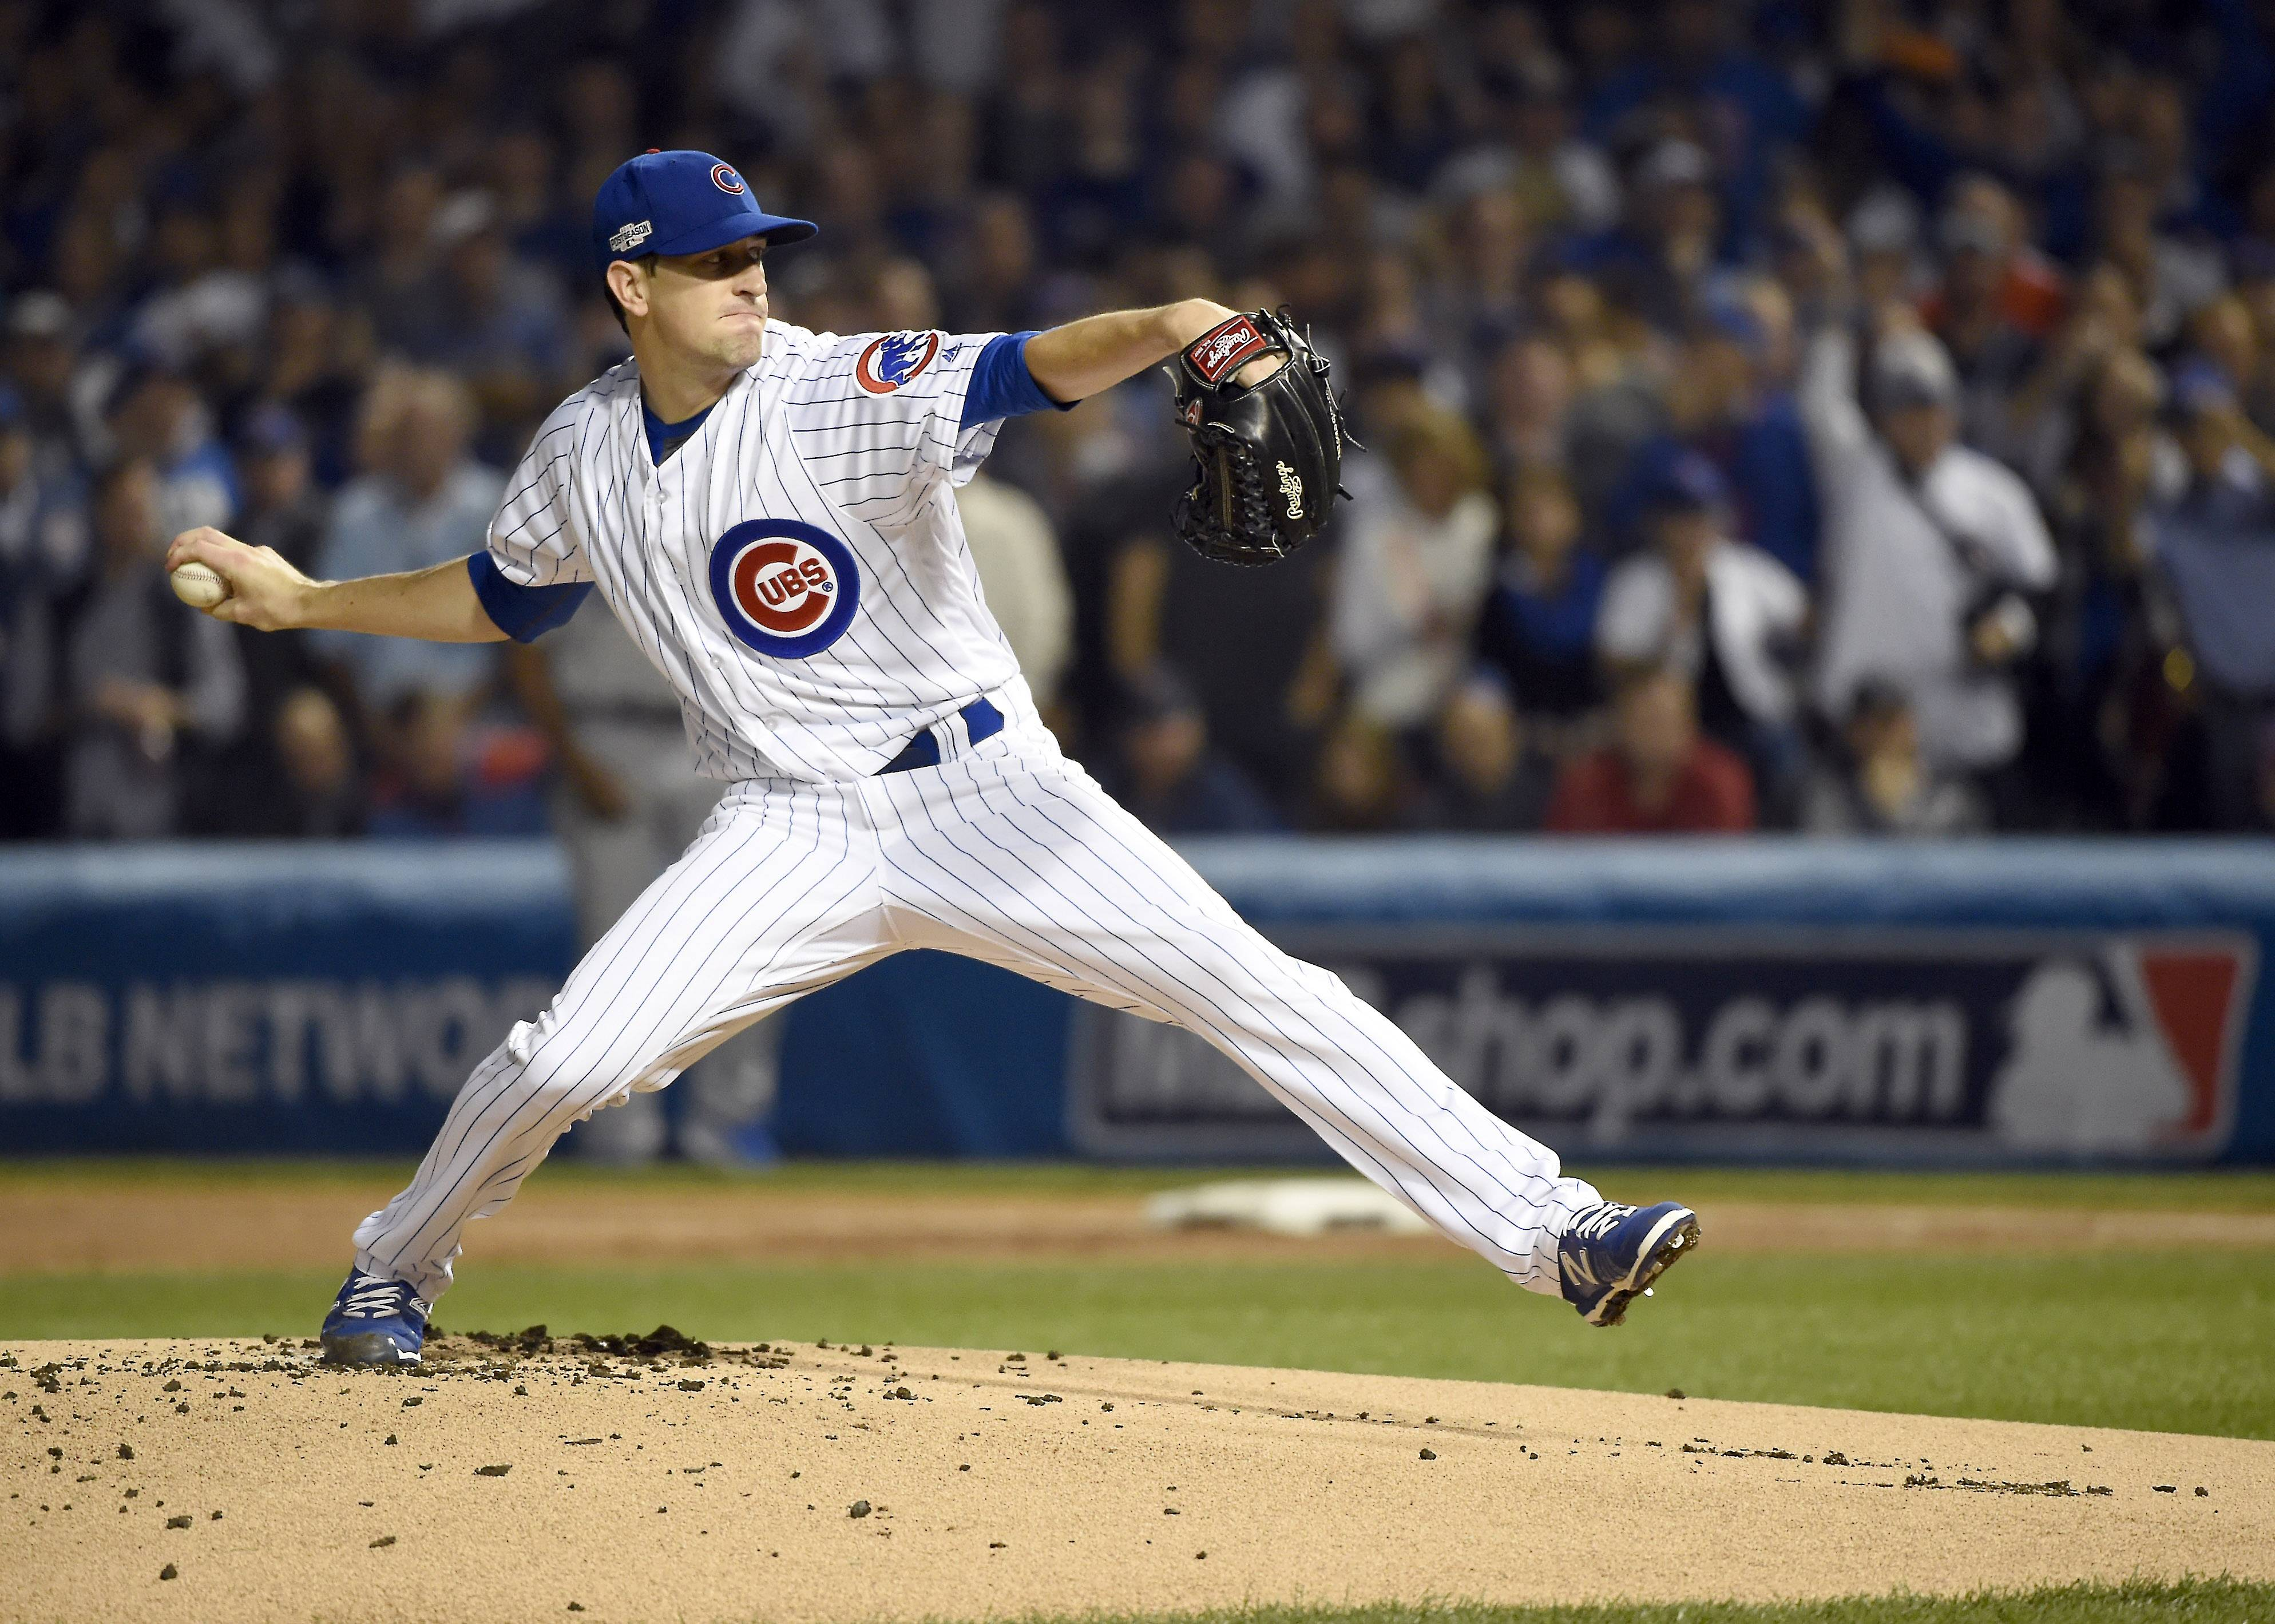 Cubs starting pitcher Kyle Hendricks was masterful in Game 6 of the NLCS. The Cubs have a deep rotation and it should be an advantage in Game 3 of the World Series on Friday when Hendricks starts against Cleveland Indians right-hander Josh Tomlin.